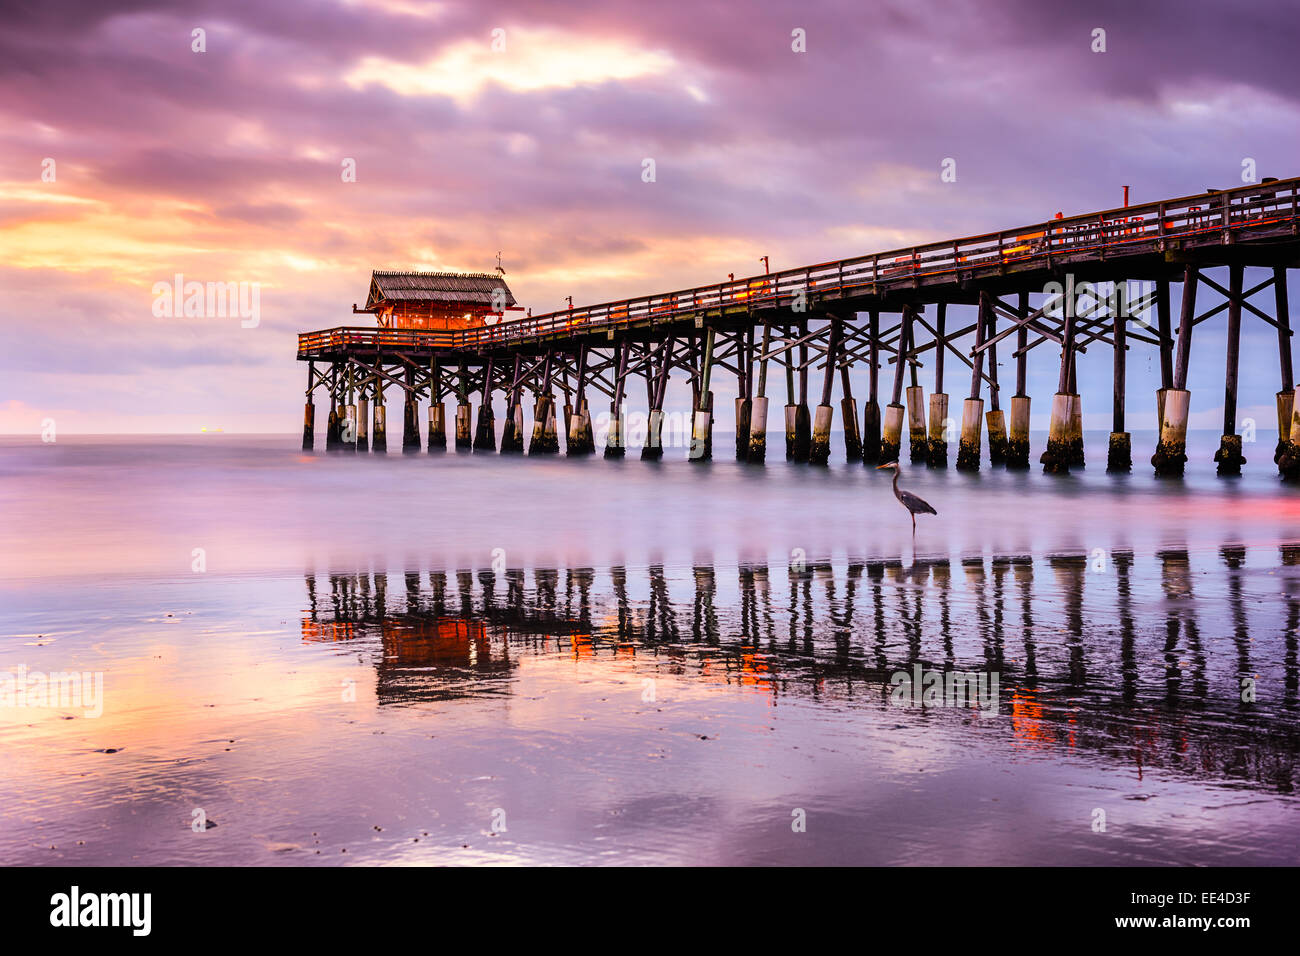 Cocoa Beach, Florida, USA at the pier. - Stock Image